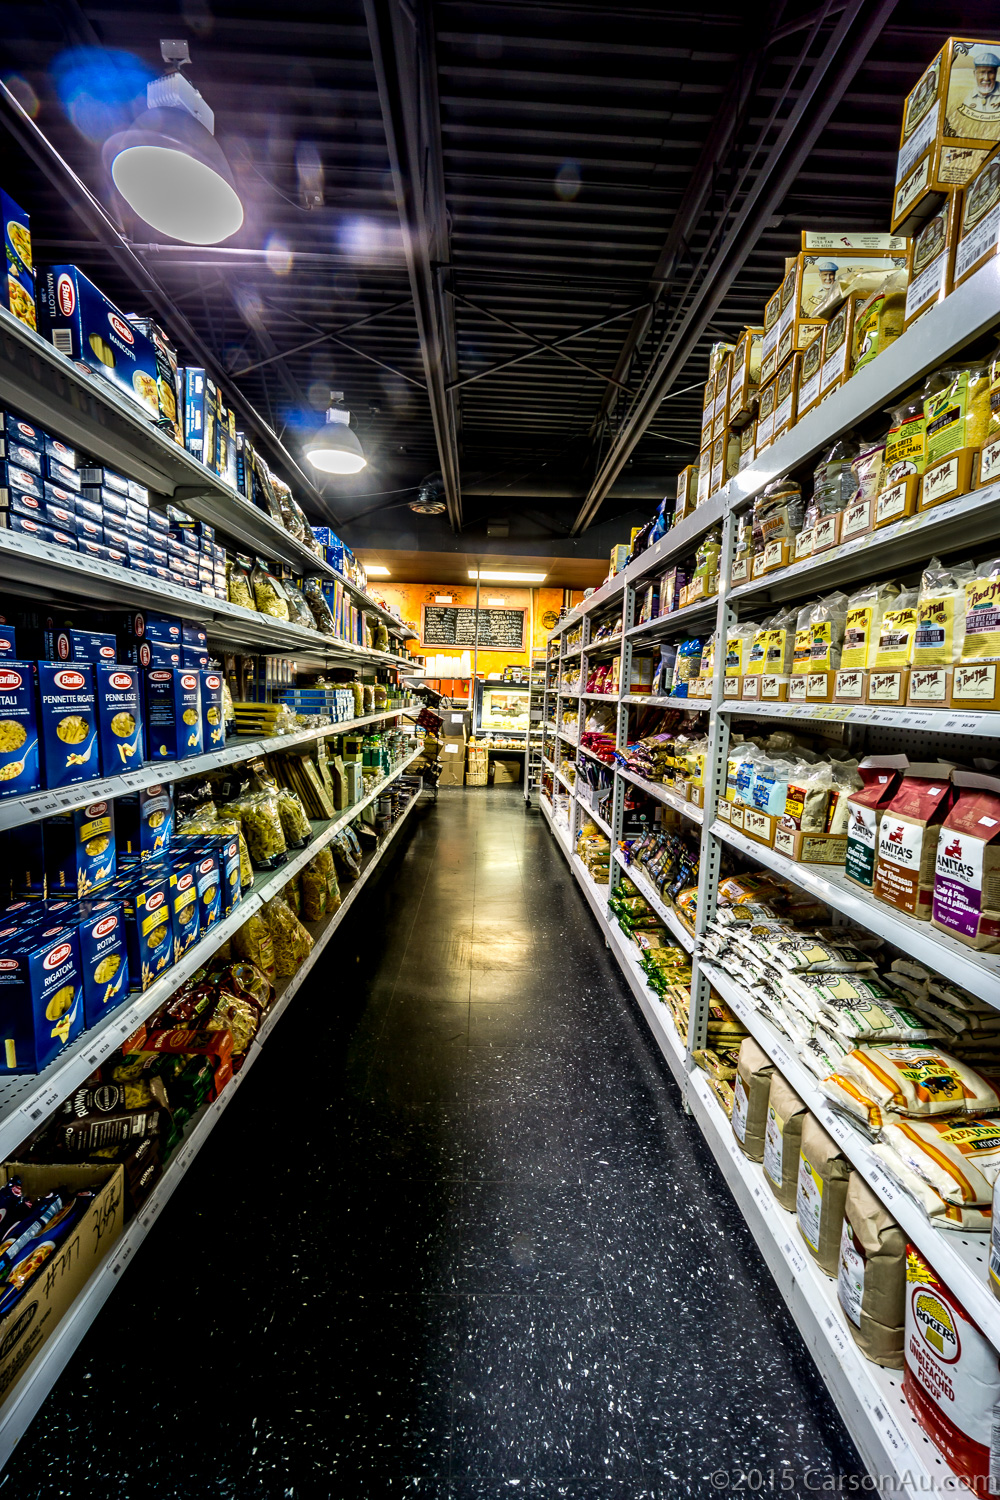 We have a whole aisle dedicated to bringing you dozens of different brands & varieties of pasta & sauces. We've got everything from traditional Italian linguine to black bean & rice noodles and many delicious sauces to go with it.